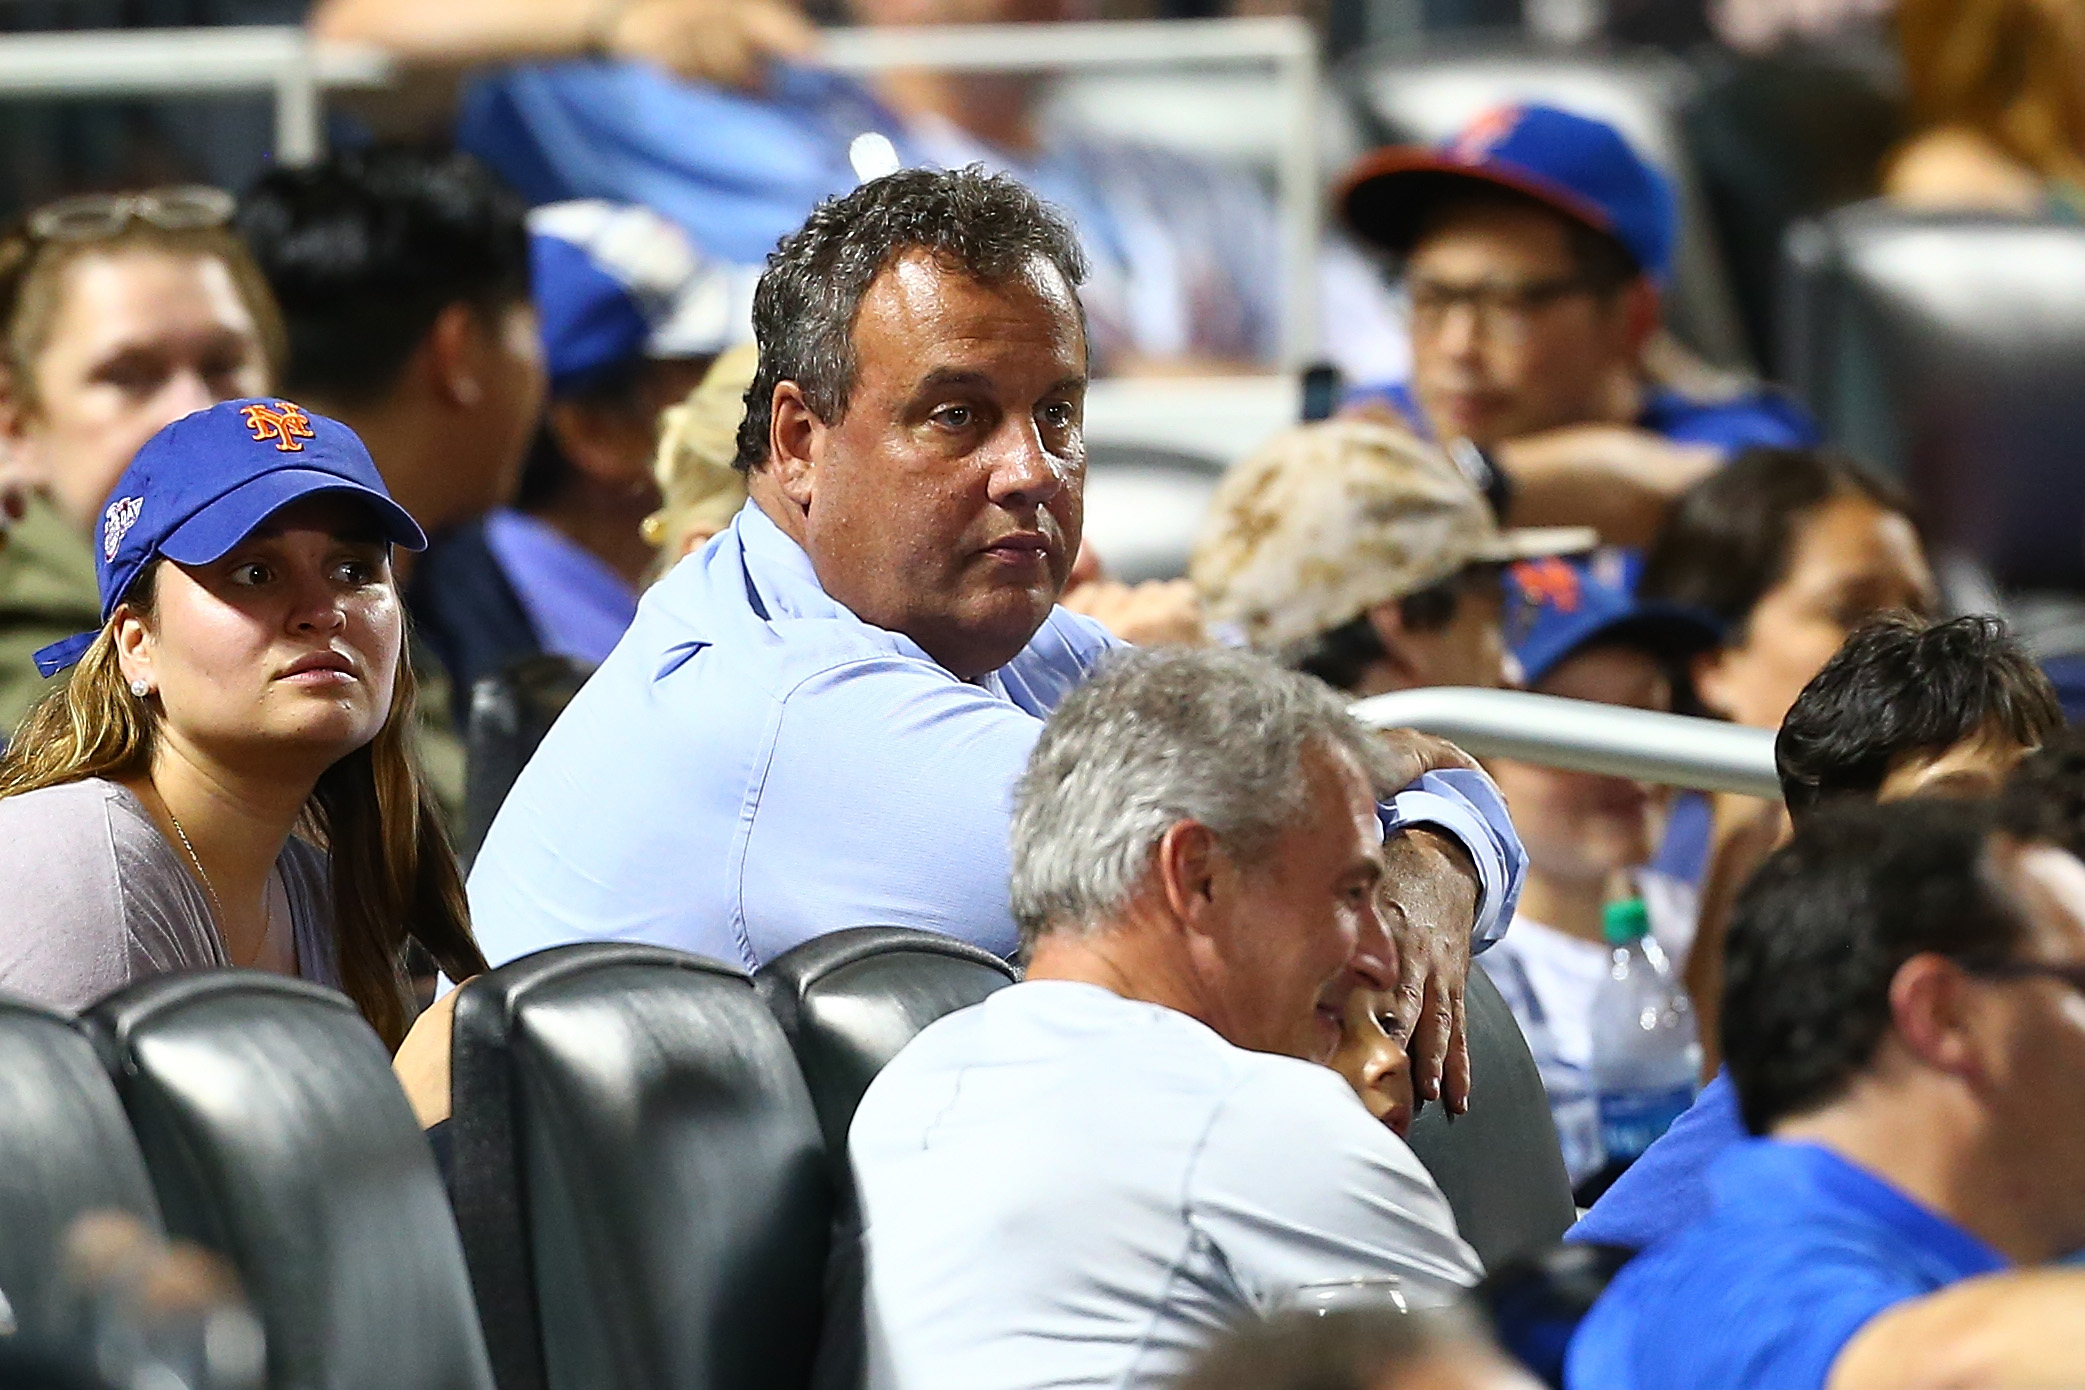 Governor of New Jersey Chris Christie attends the game between the New York Mets and the St. Louis Cardinals at Citi Field on July 18, 2017 in the Flushing neighborhood of the Queens borough of New York City. Mike Stobe—Getty Images